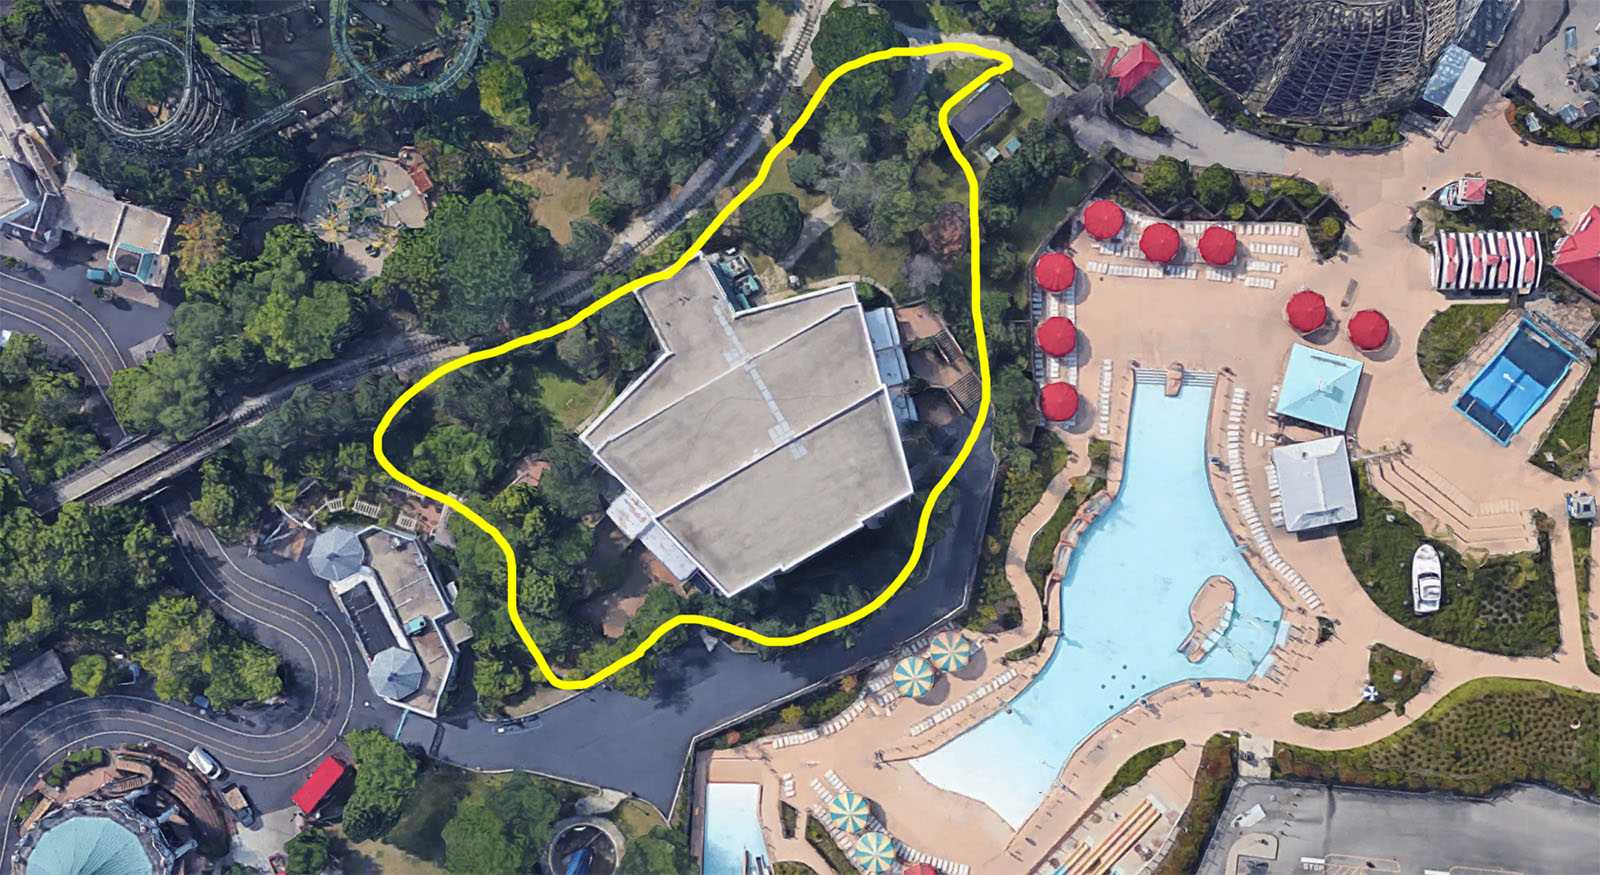 Six Flags Great America 2019 Theories and Land Clearing - UPDATED